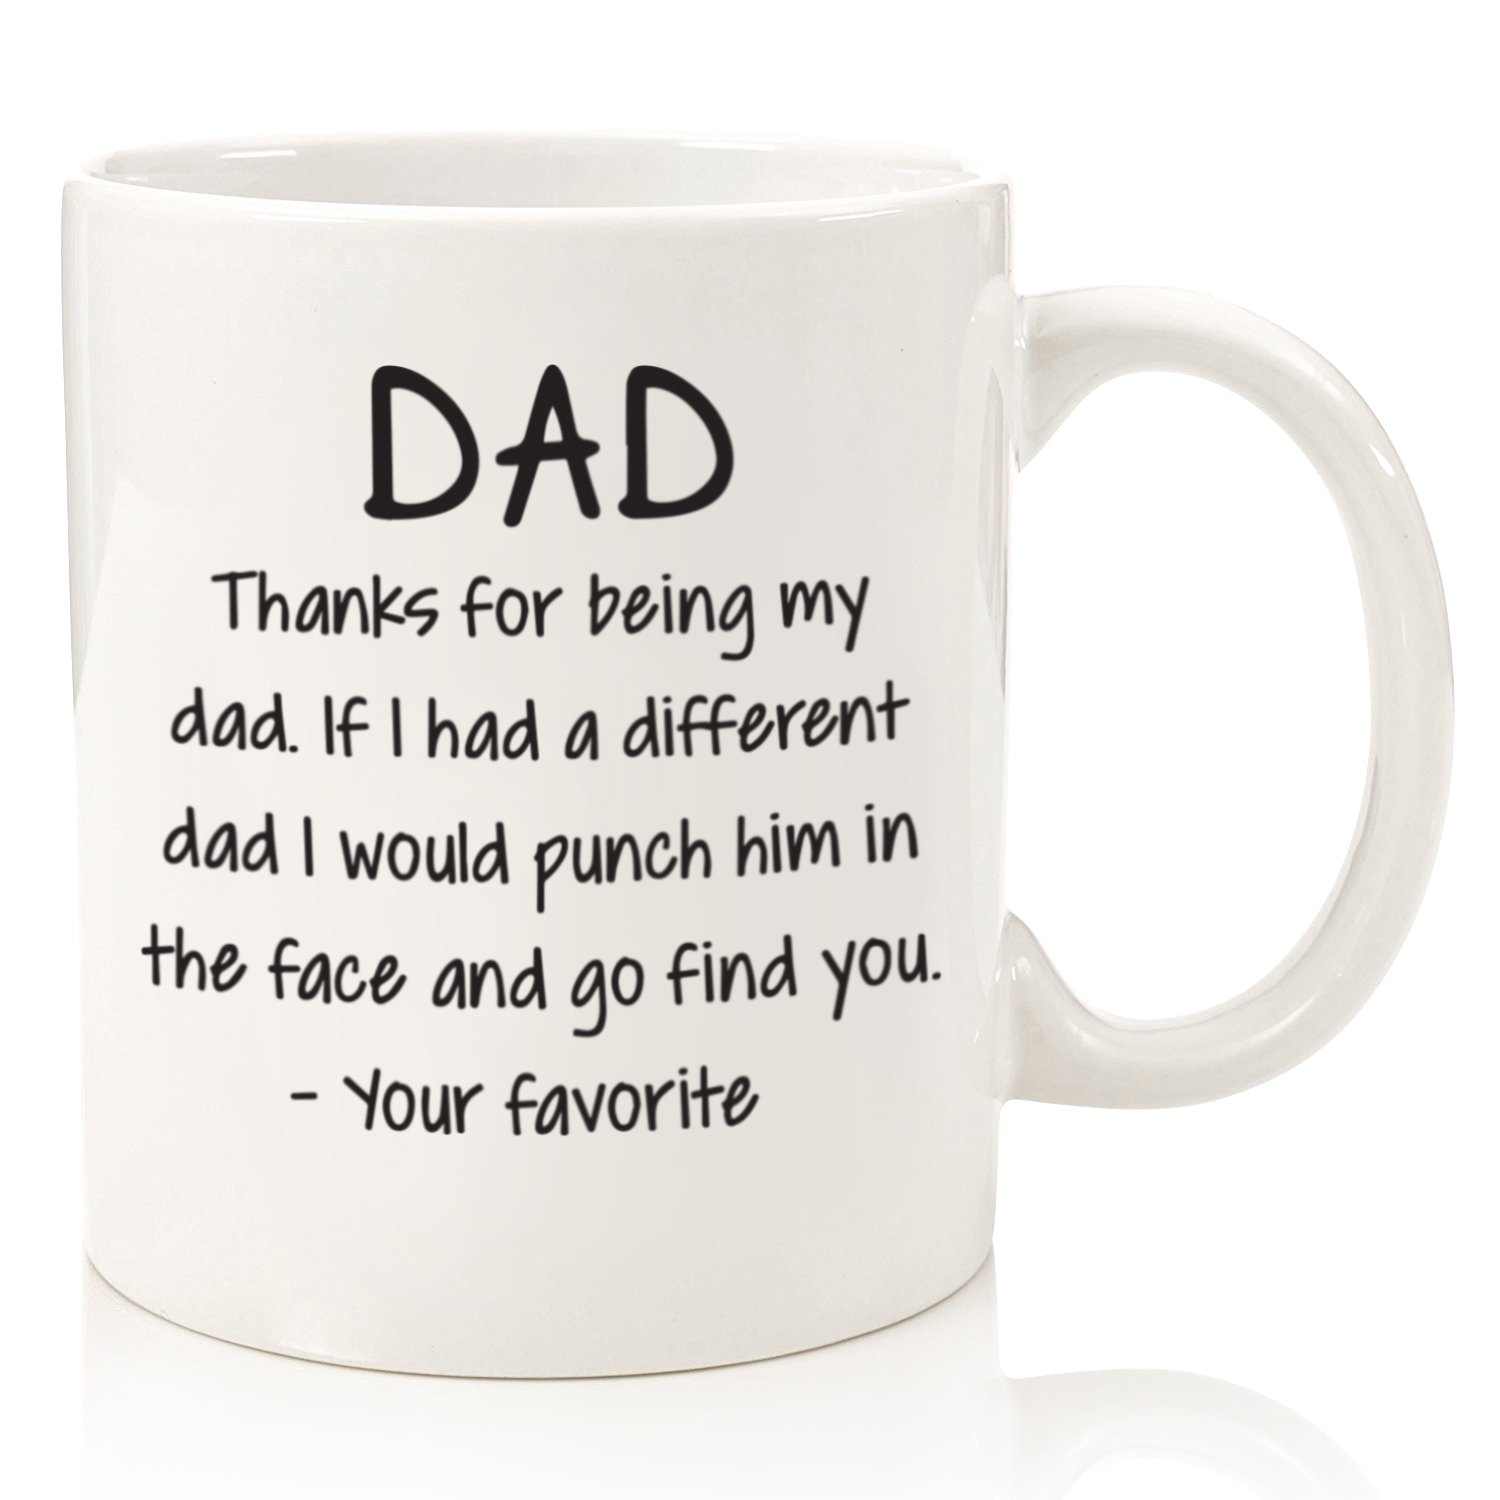 Thanks For Being My Dad Funny Mug - Best Dad Fathers Day Gifts - Unique Gag Gift For Him From Daughter, Son - Cool Birthday Present Idea For a Father, Men, Guys - Fun Novelty Coffee Cup - 11 oz